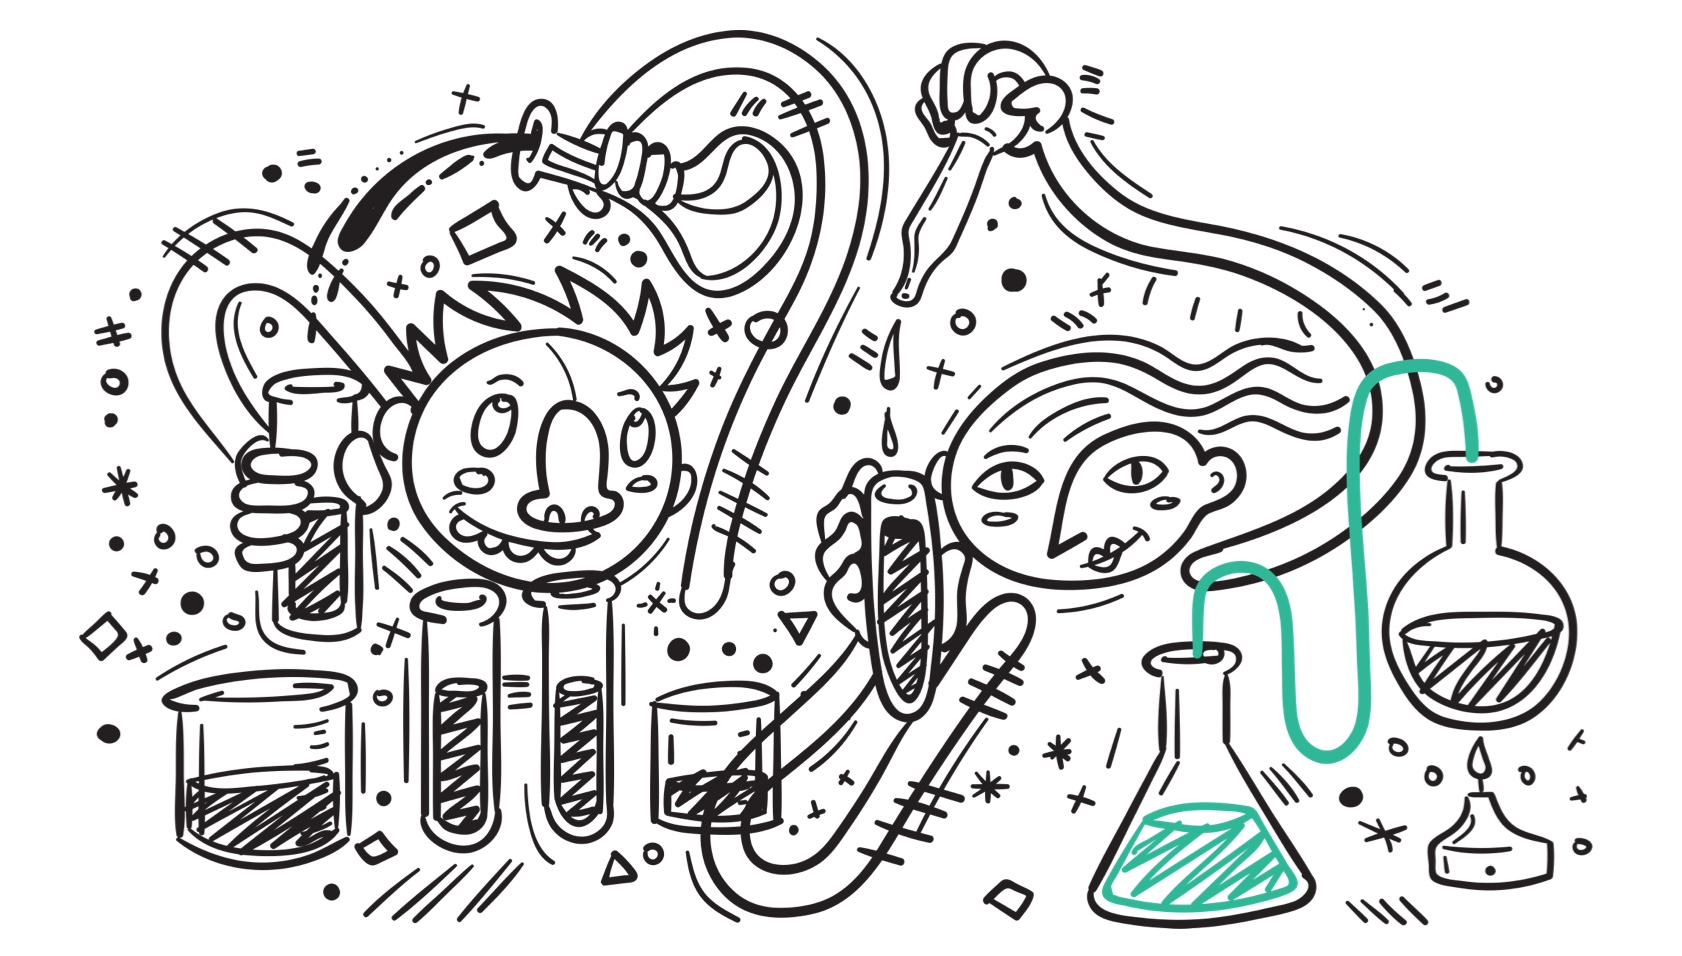 Illustration showing people measuring things in test tubes